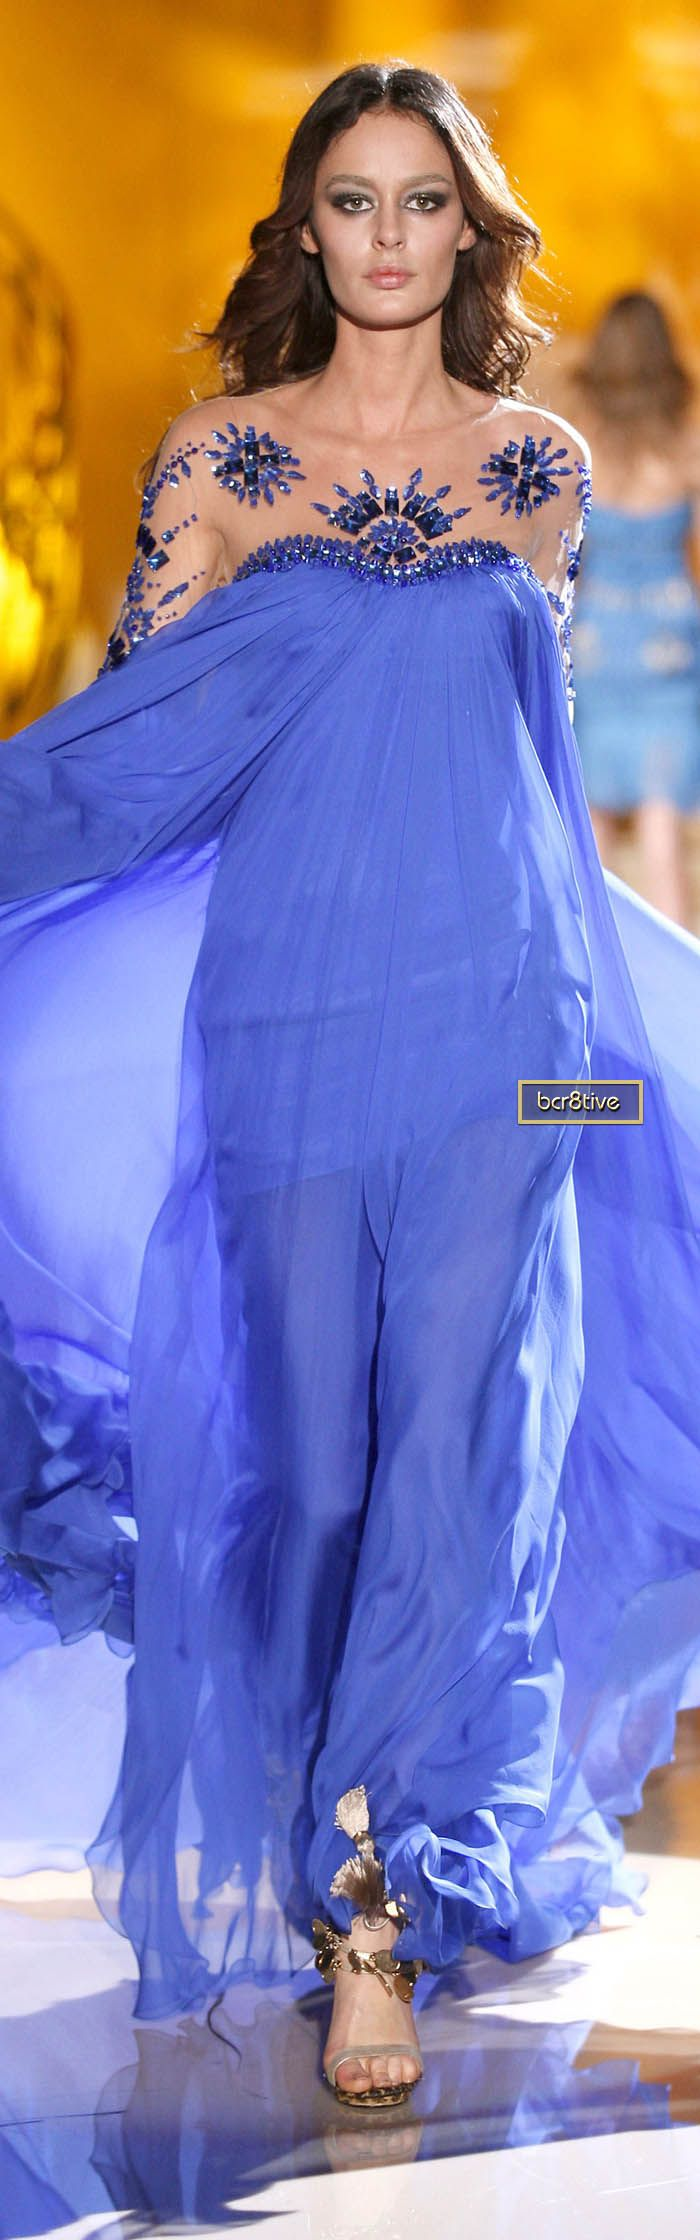 Fashion 50 shades of blue on pinterest haute couture for 50 haute couture